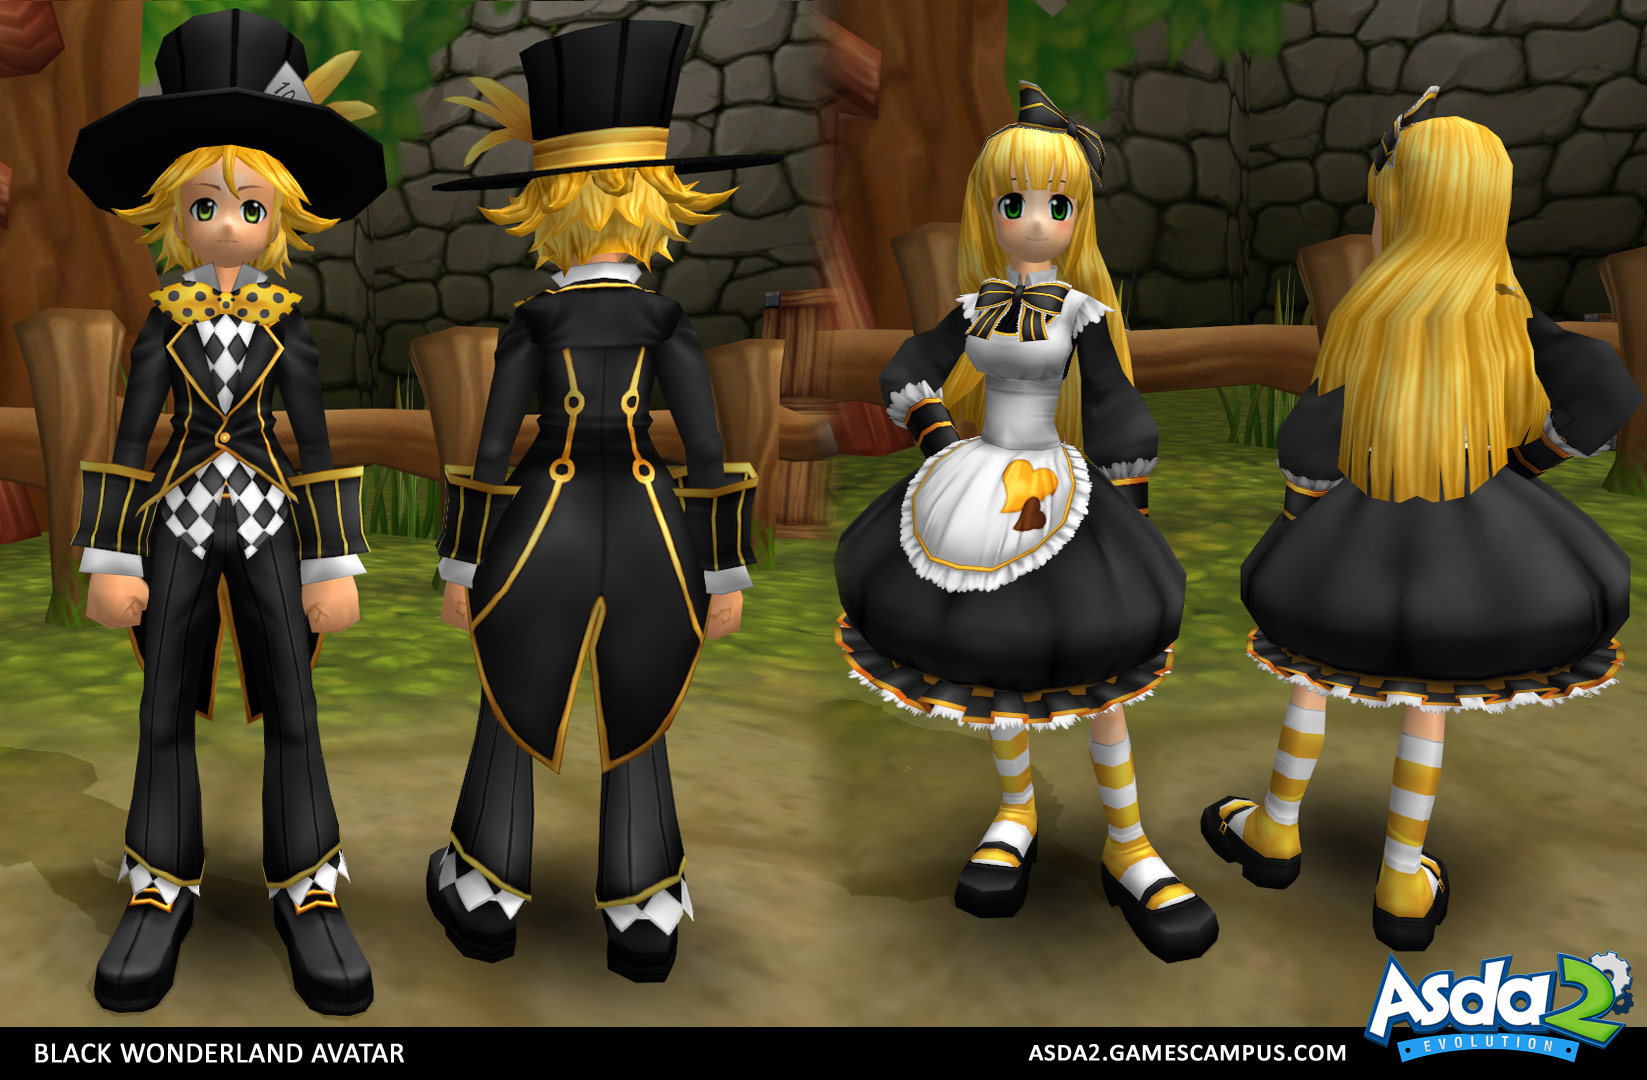 Best Anime MMORPG - Asda 2 - Black Wonderland Set